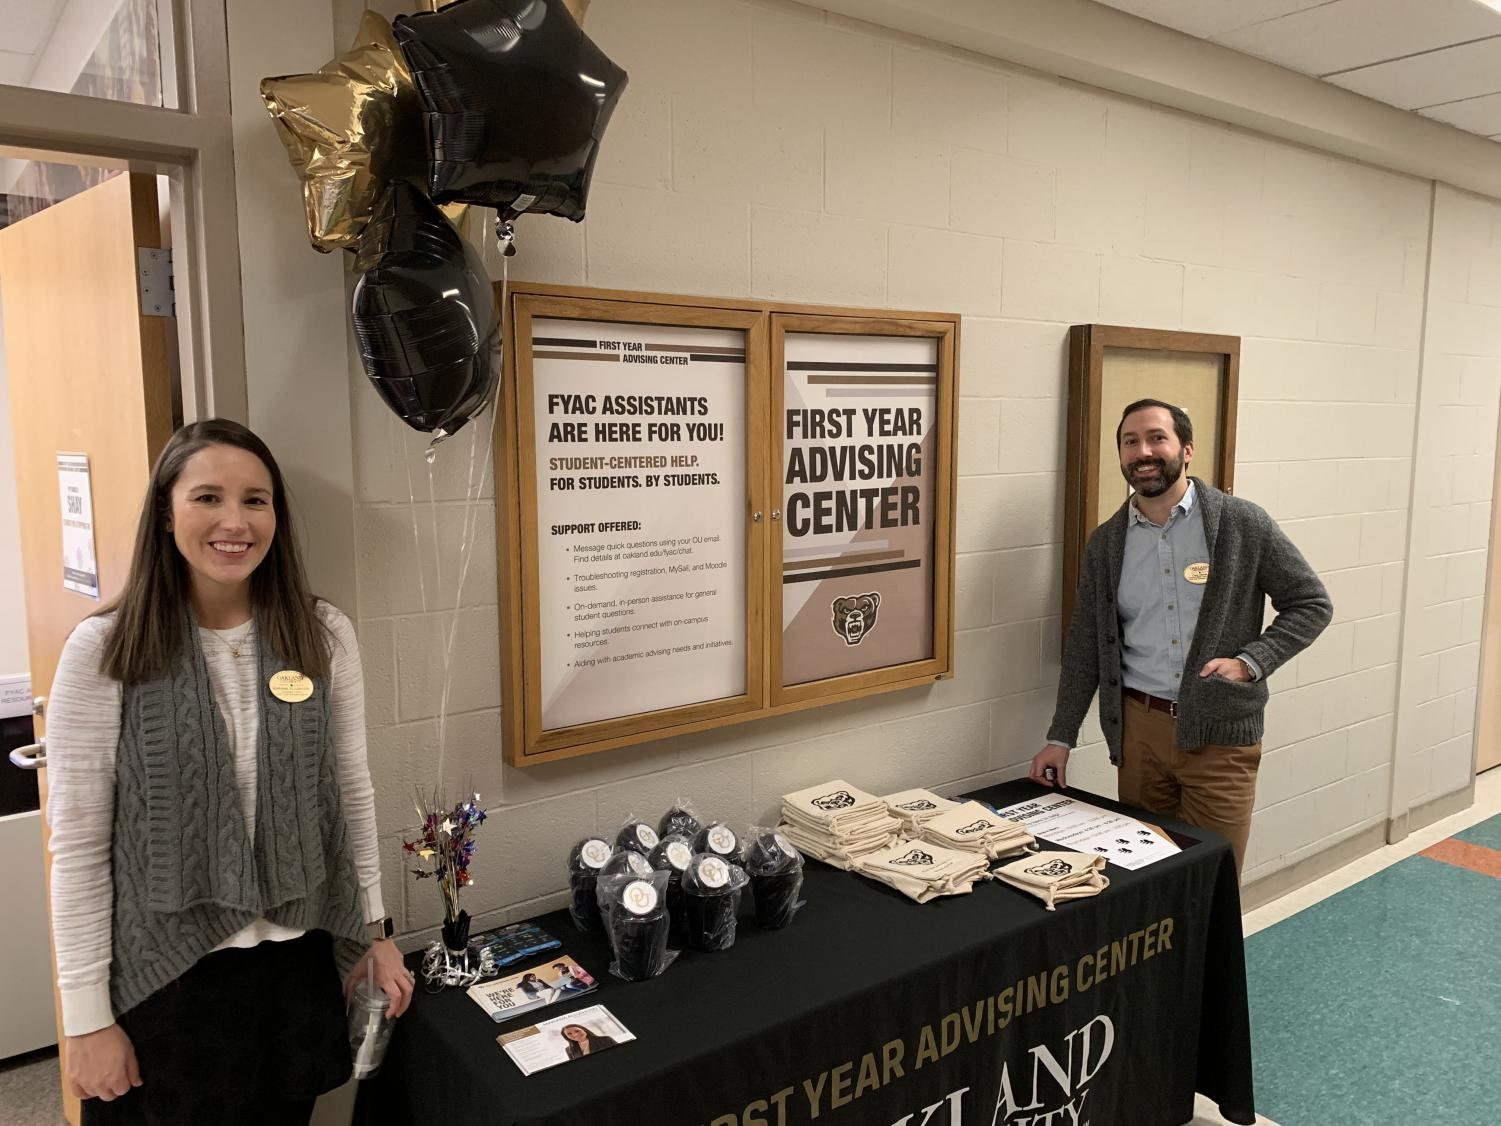 Oakland's First Year Advising Center was selected as the 2019 winner of the Outstanding Institutional Advising Program Award.